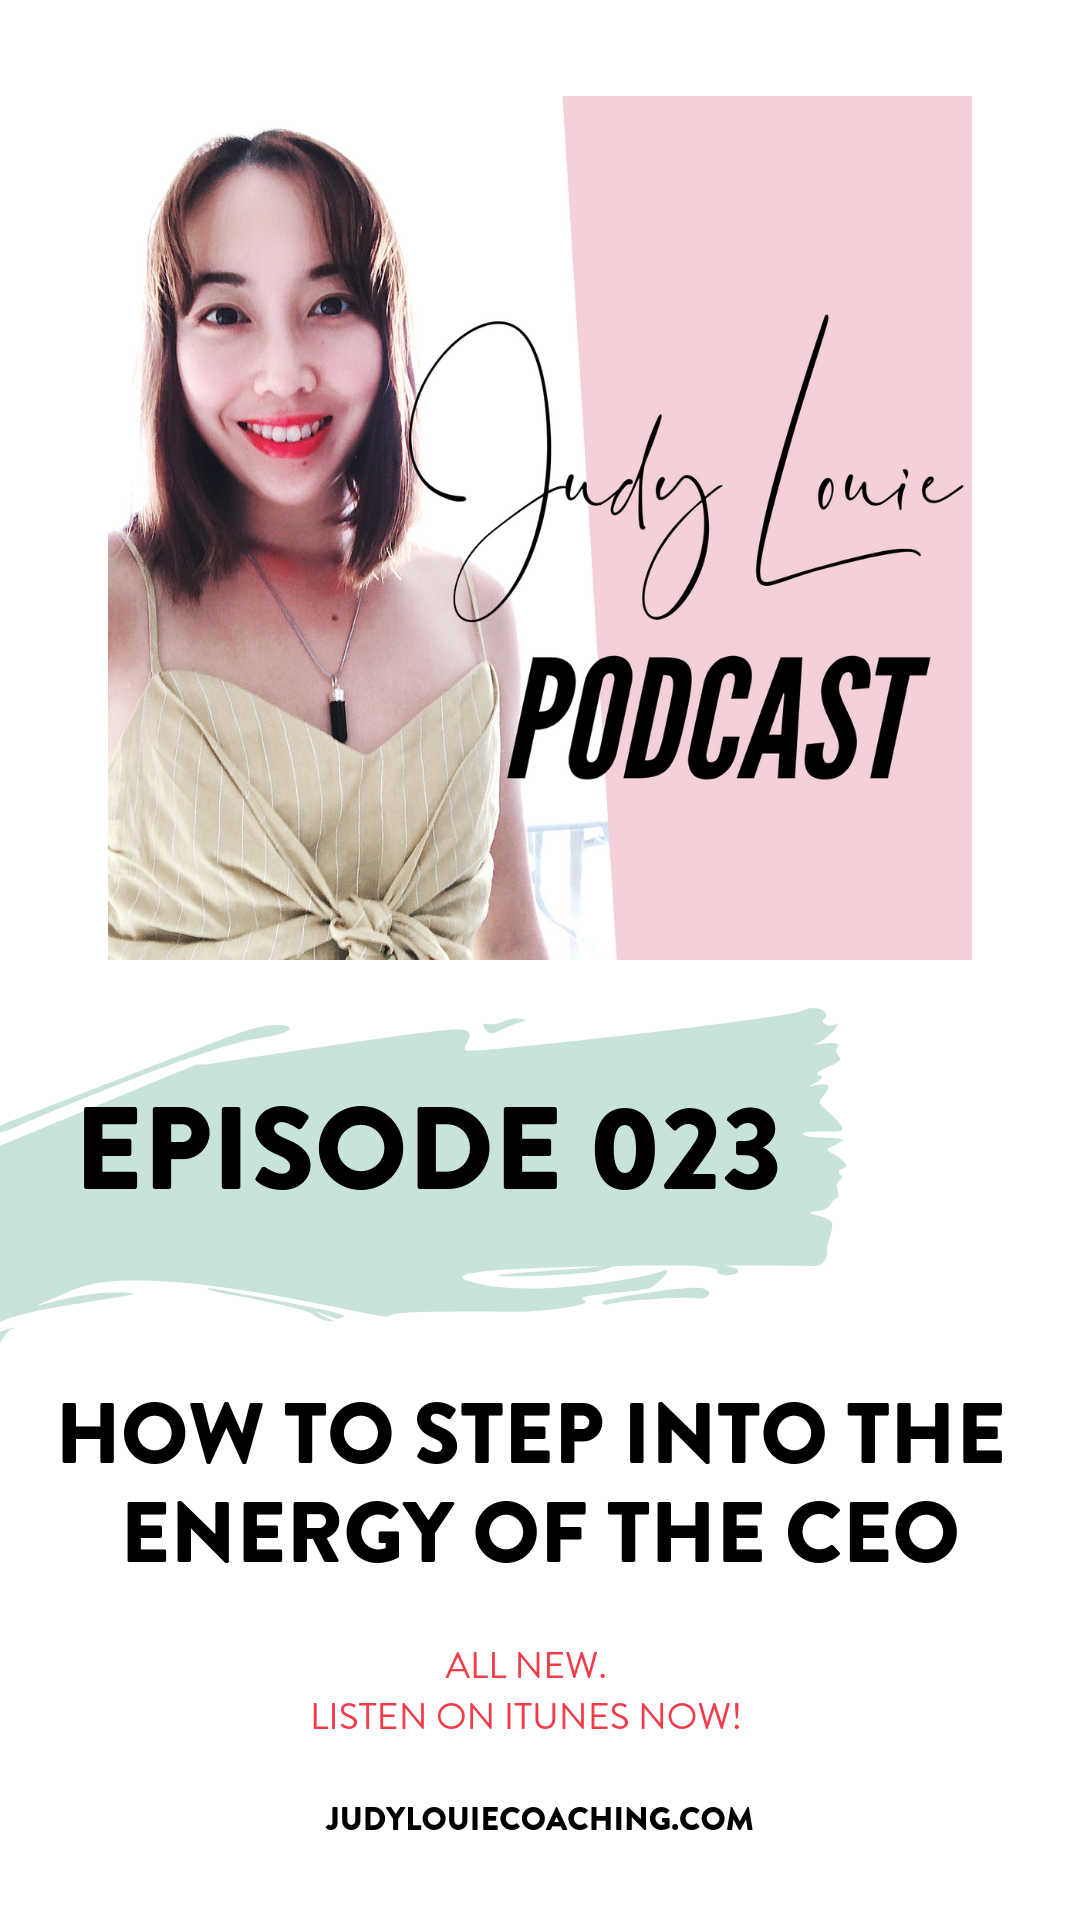 judy louie podcast - ceo energy - ep023.png